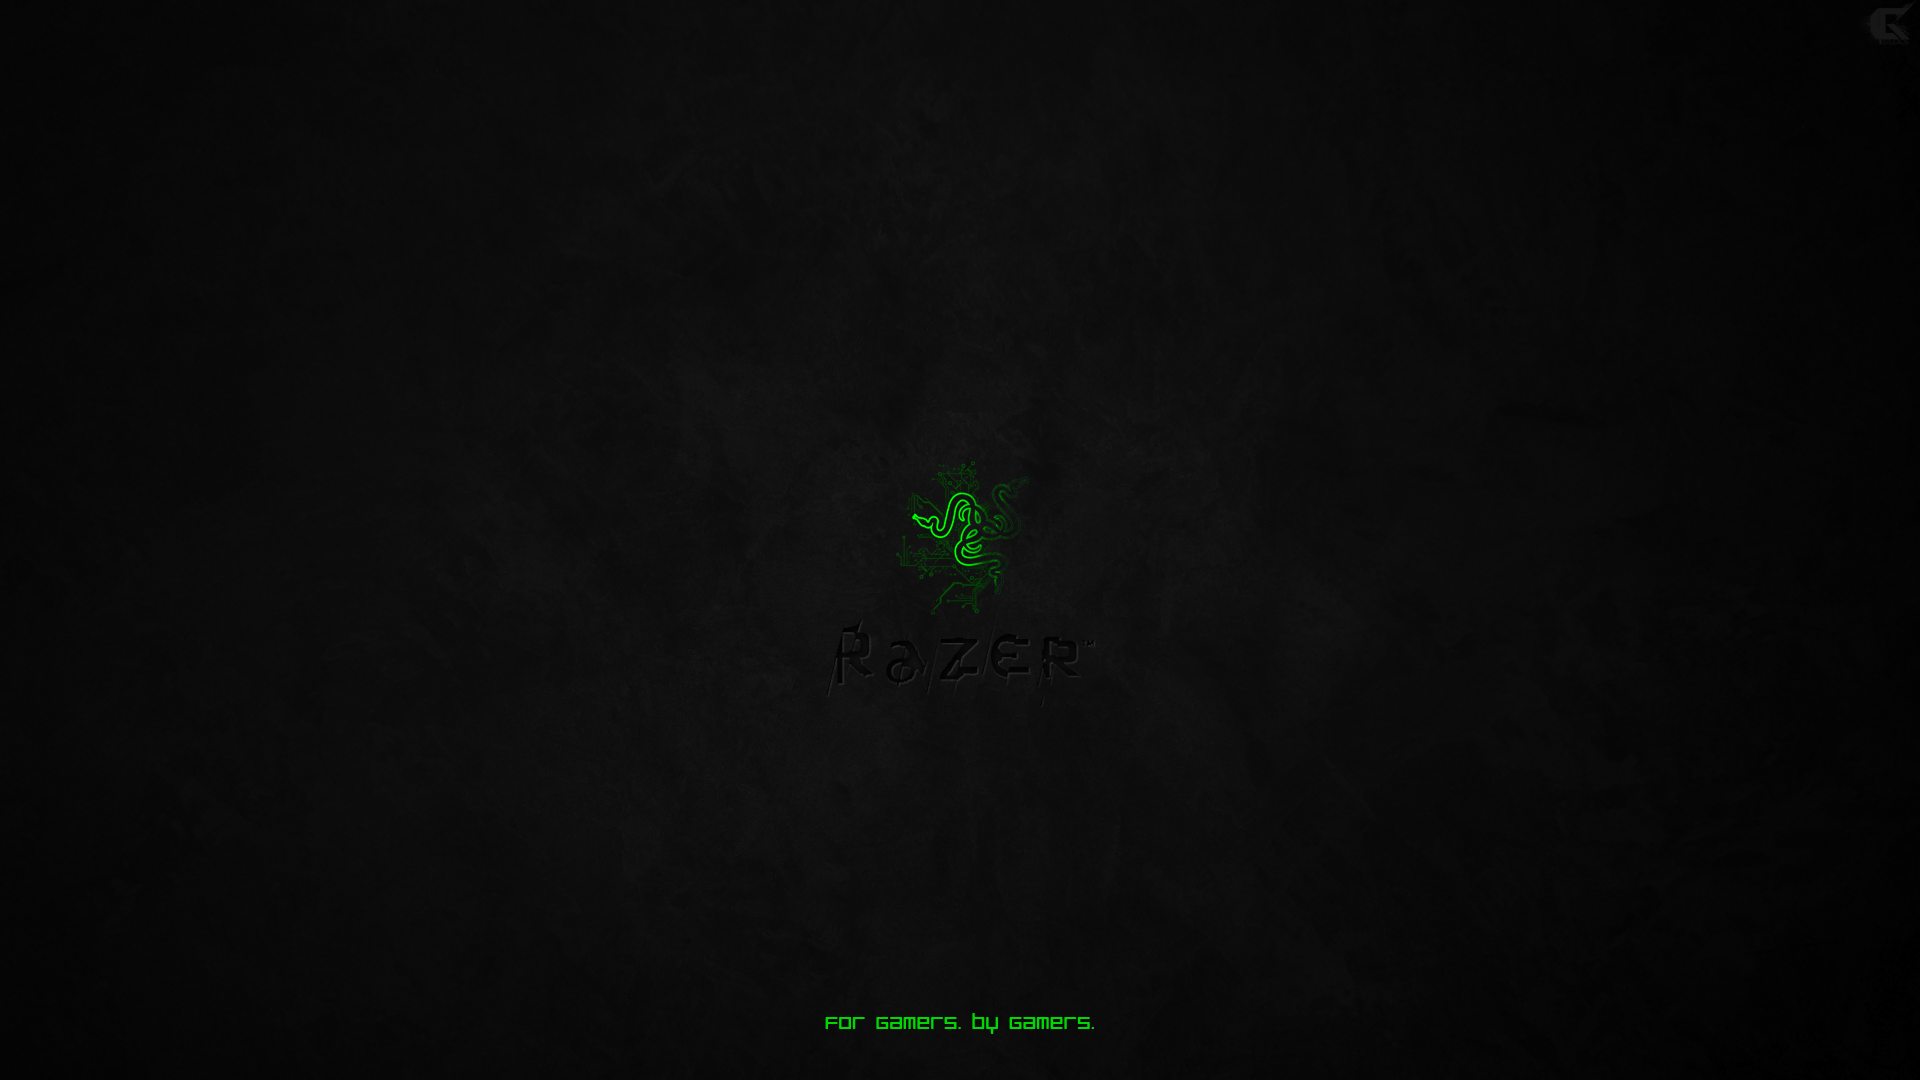 Razer Wallpaper 4K - WallpaperSafari